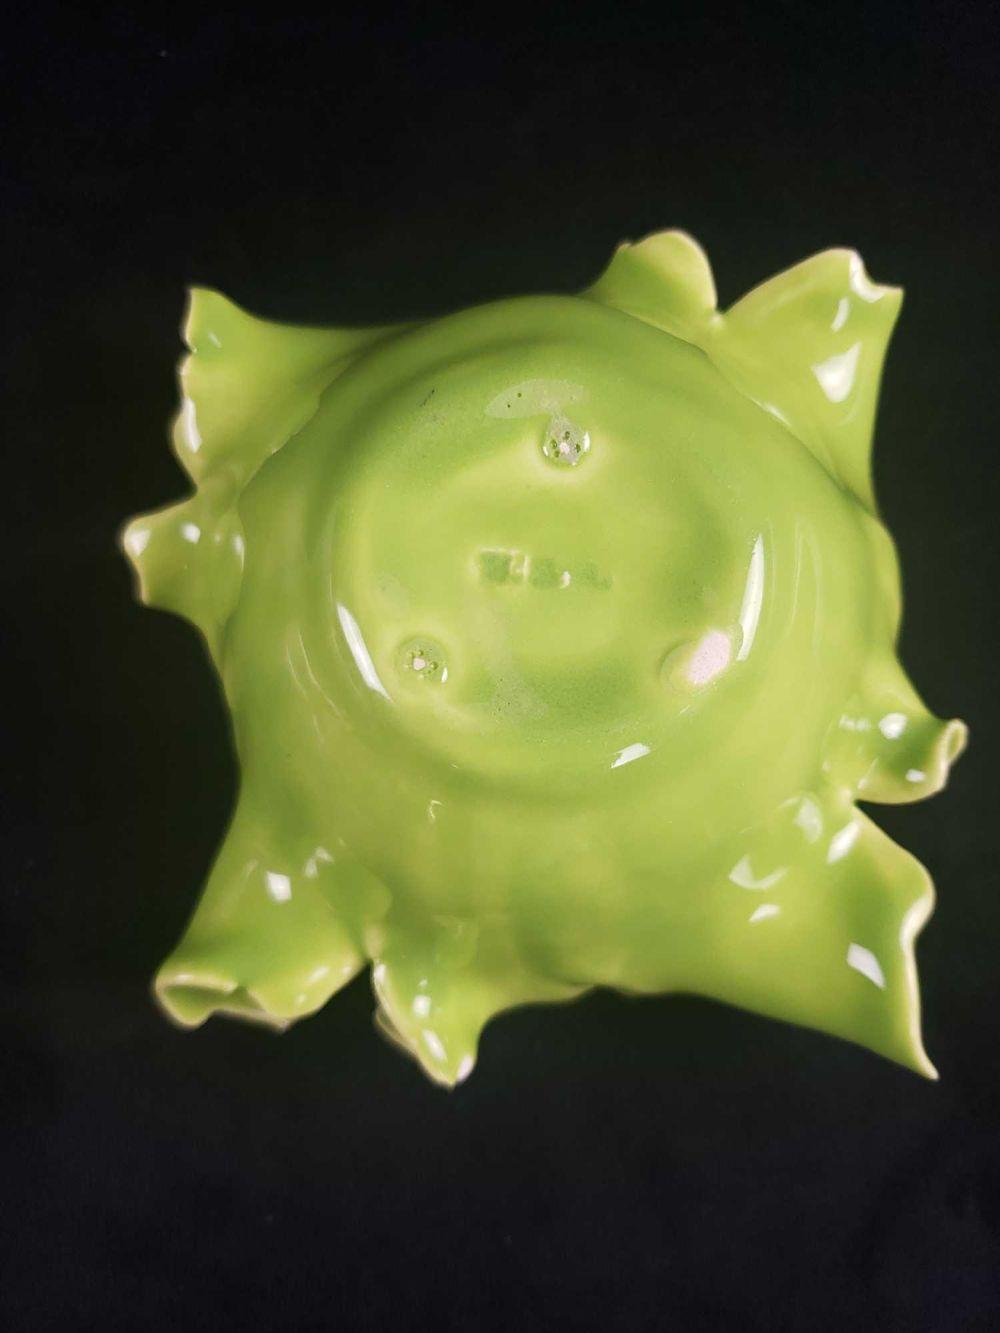 Lot 456: Pink Porcelain Lidded Bowl and Porcelain Lettuce Leaf Candle Holder